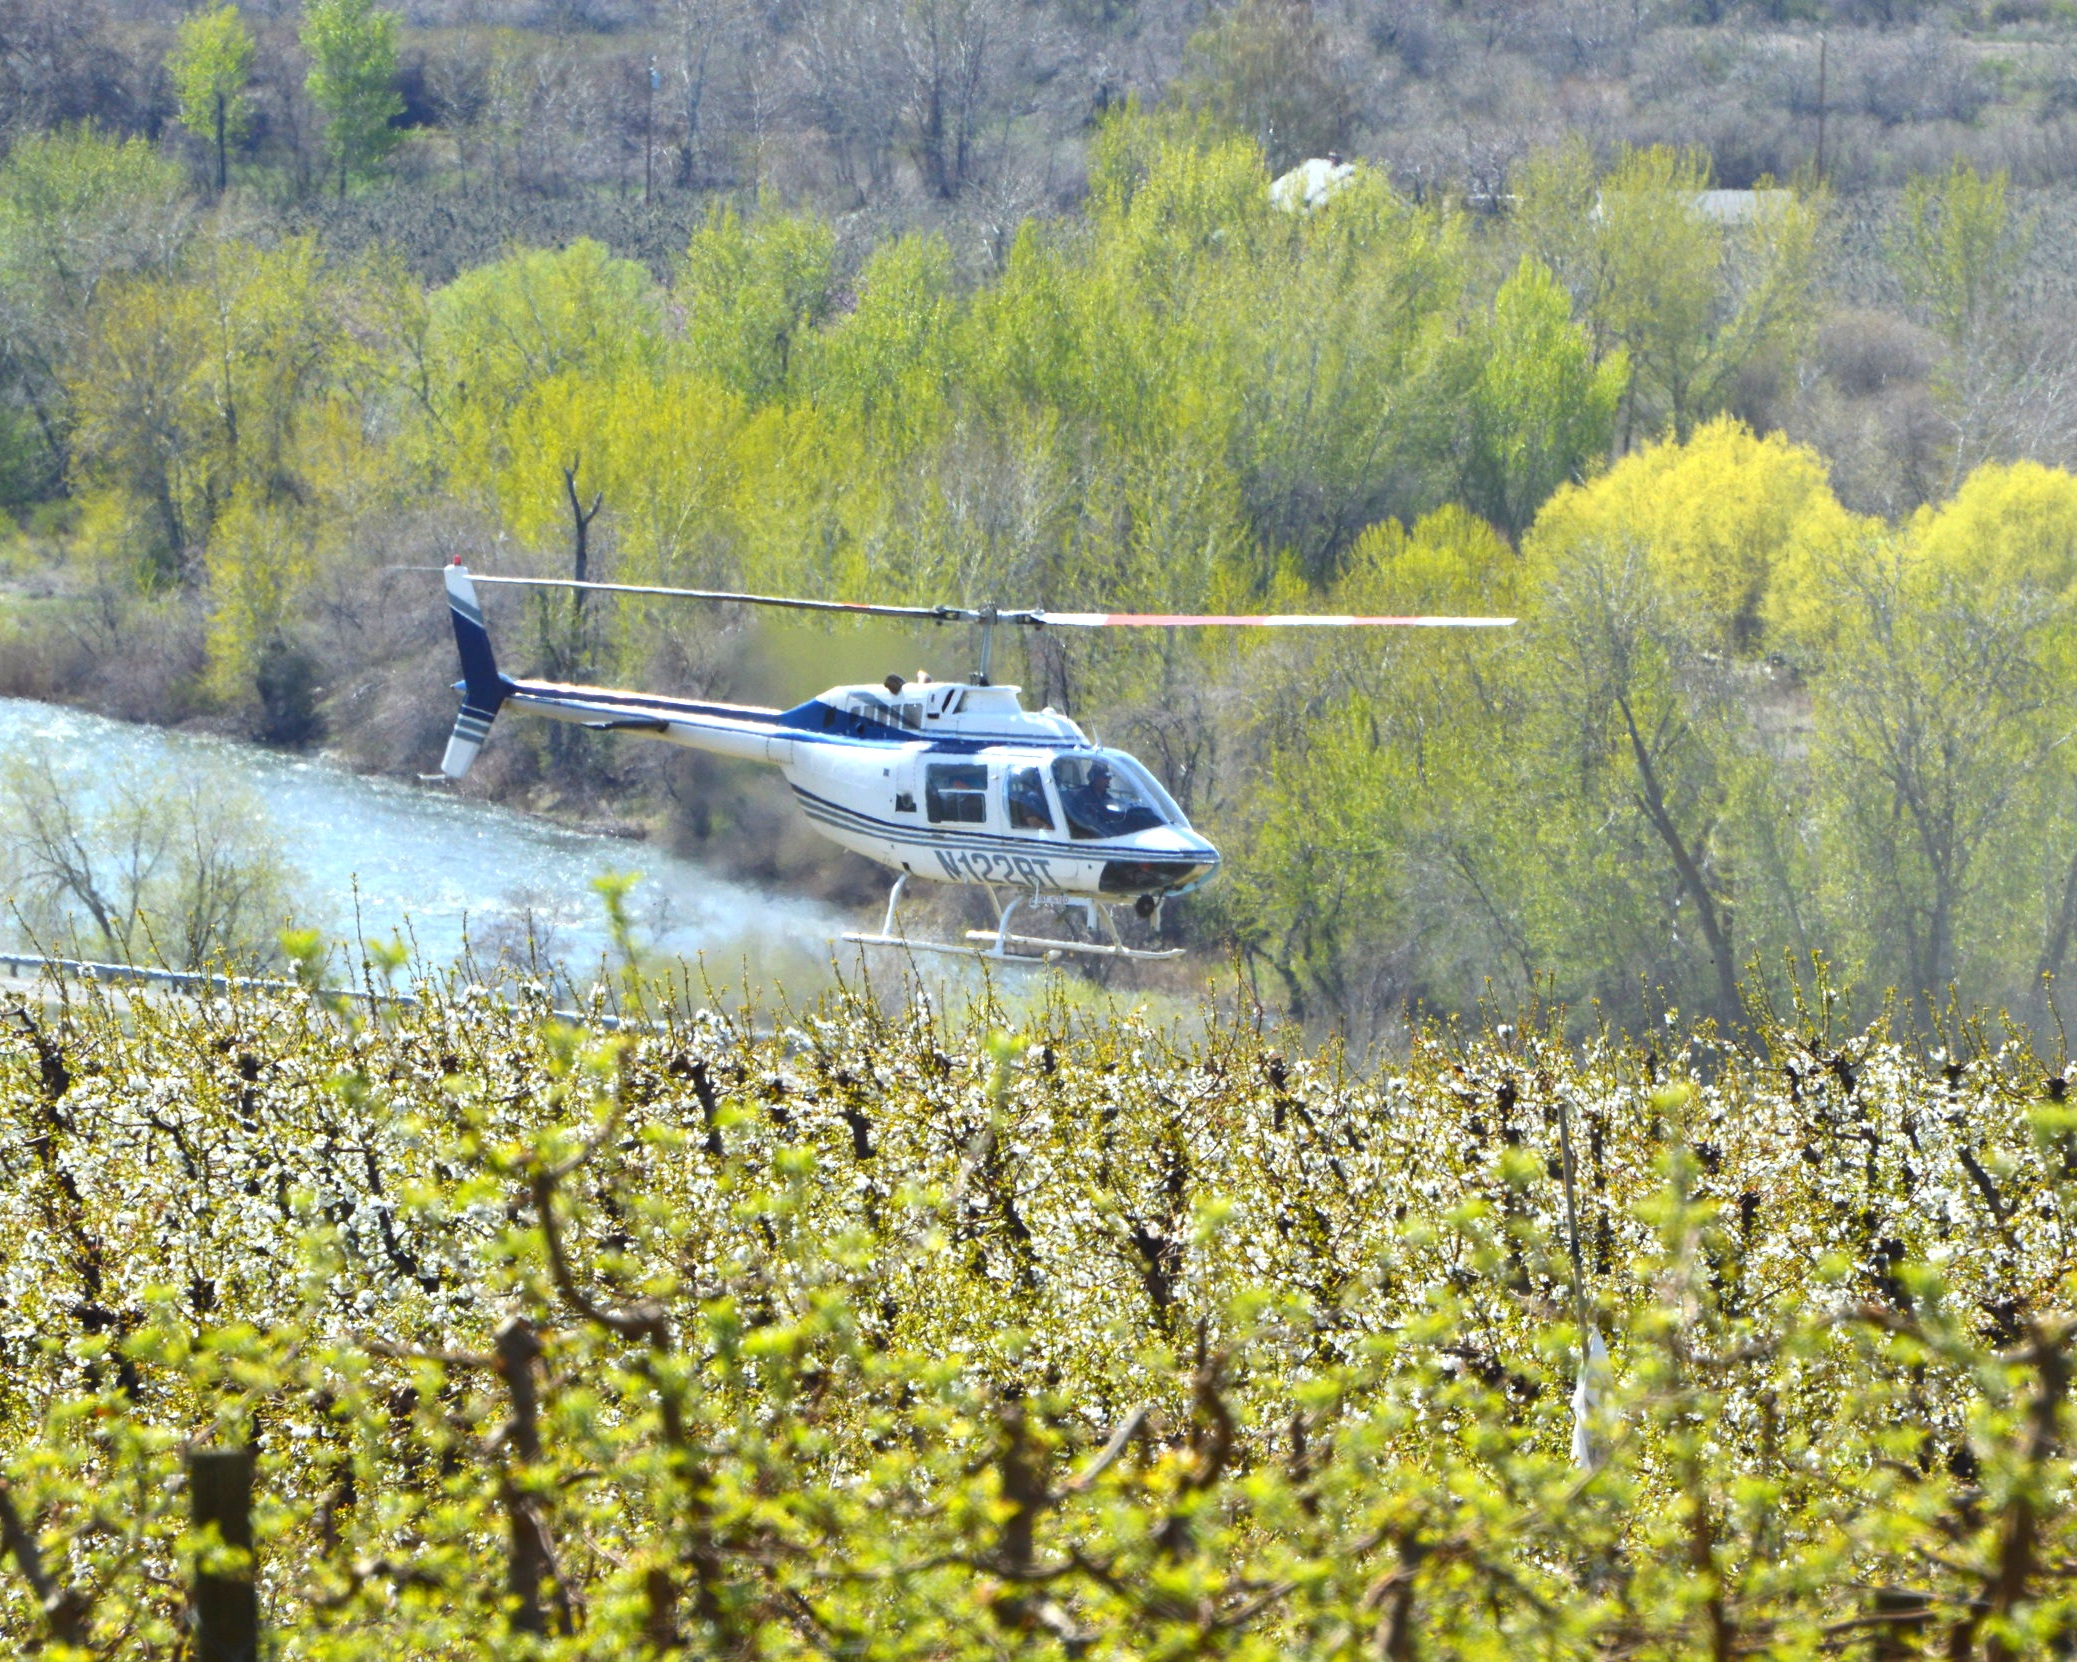 Pollen - Aircraft application is the fastest of all application methods for pollen. With aircraft application, a fixed wing aircraft or helicopter is used to carry the pollen to the orchard. It will improve set and seed set fruit size.